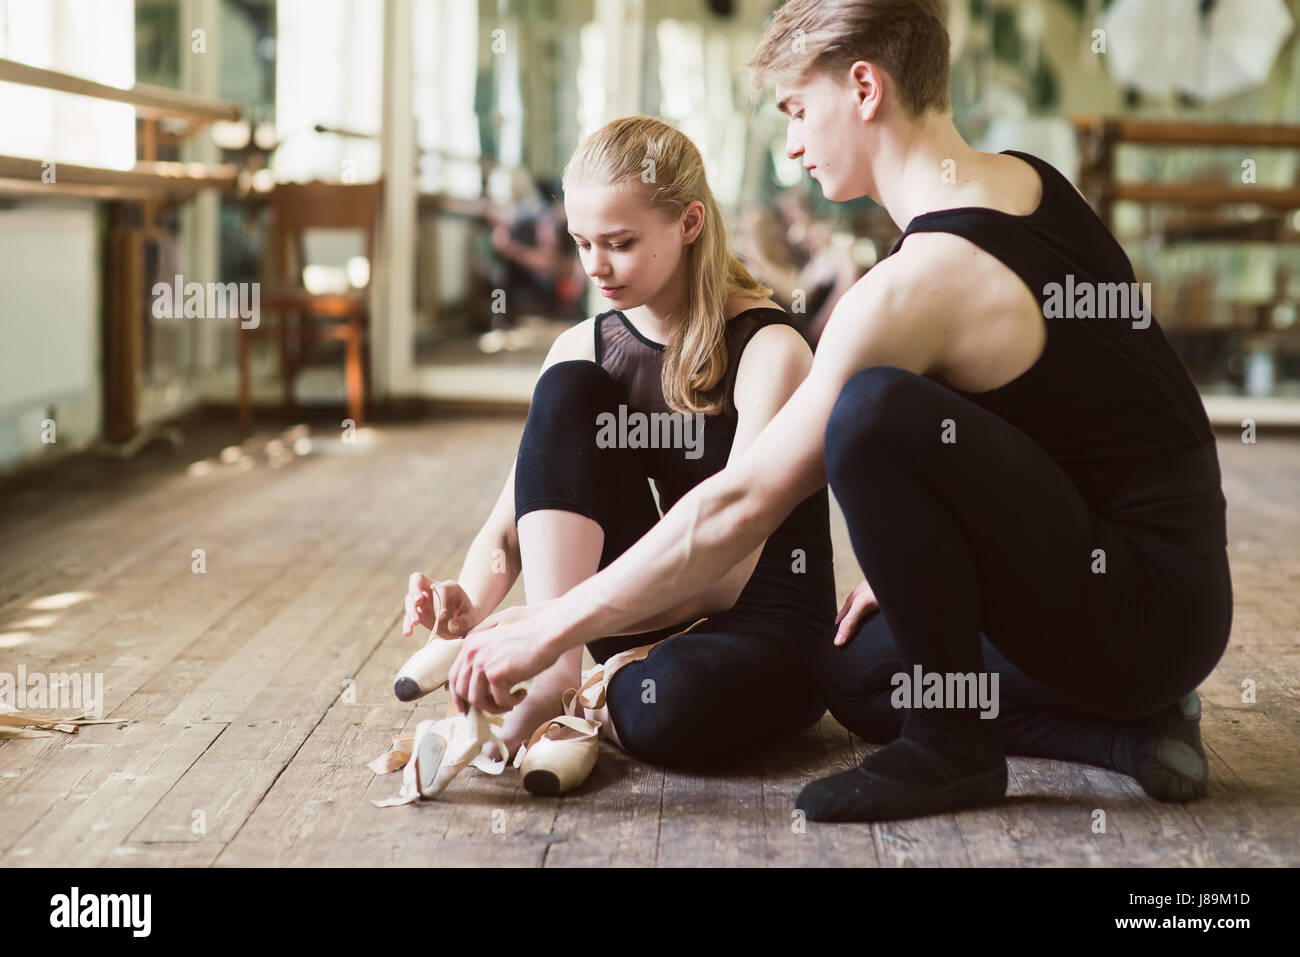 Young ballerina or dancer girl putting on her ballet shoes on the wooden floor. Male ballet dancer helps puttiing - Stock Image